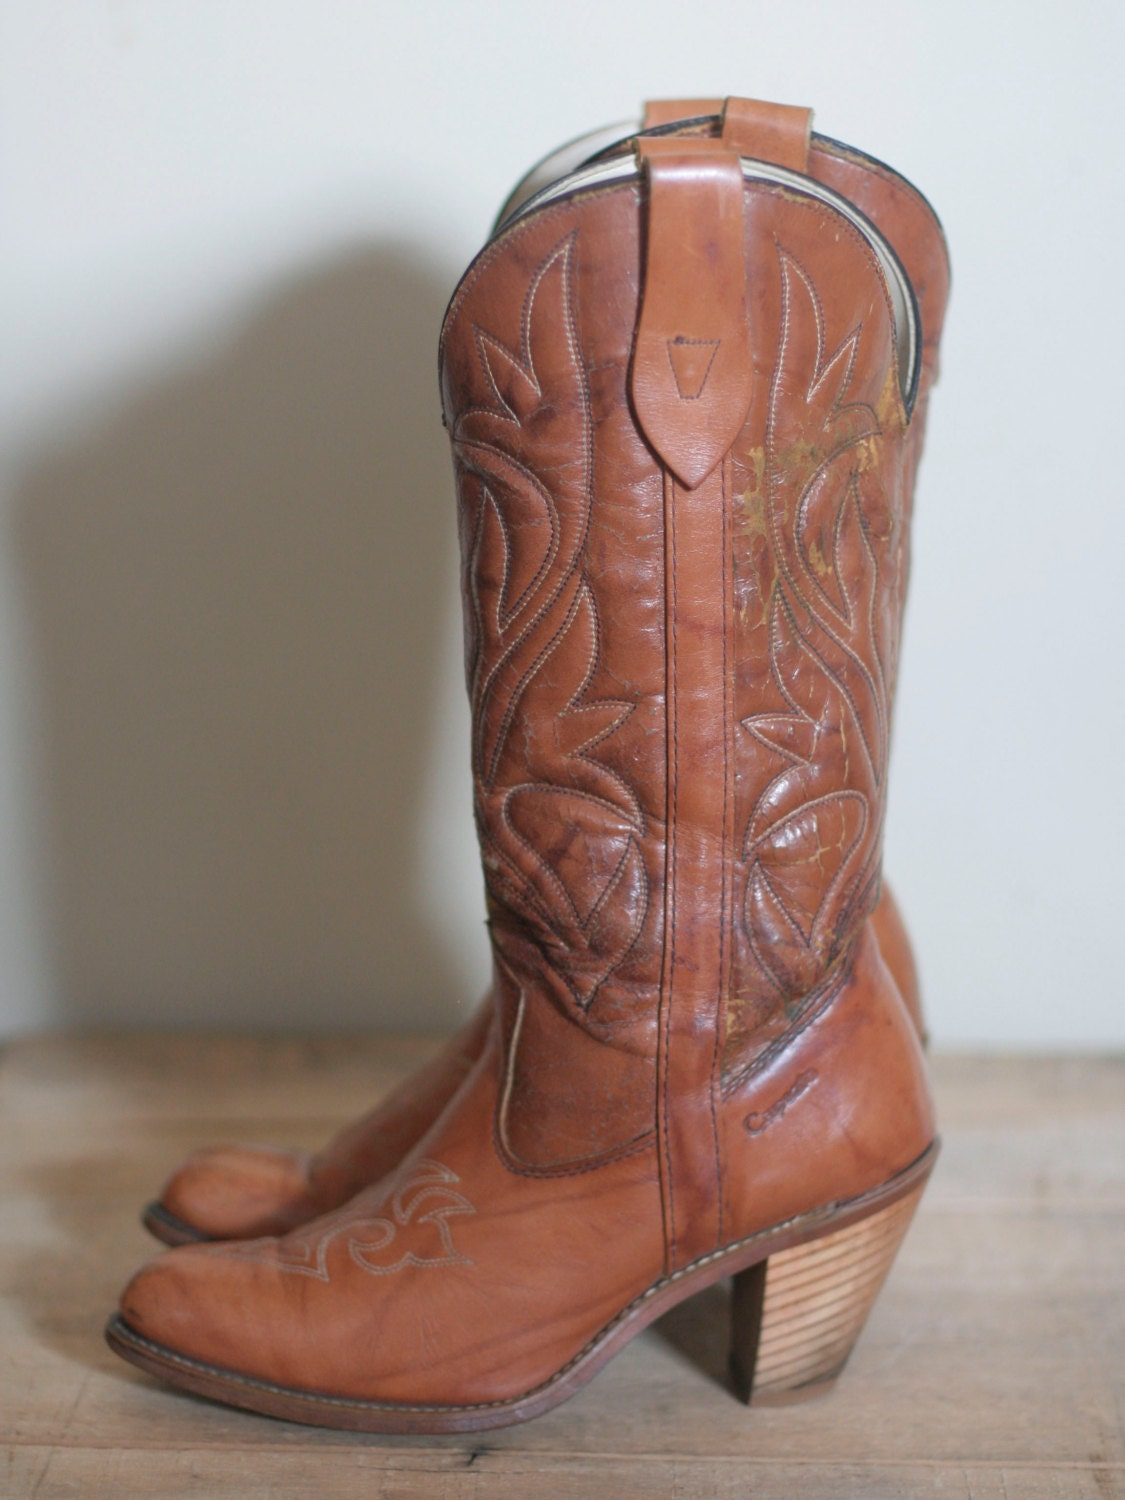 vintage women's high heel leather cowboy boots size 7 by